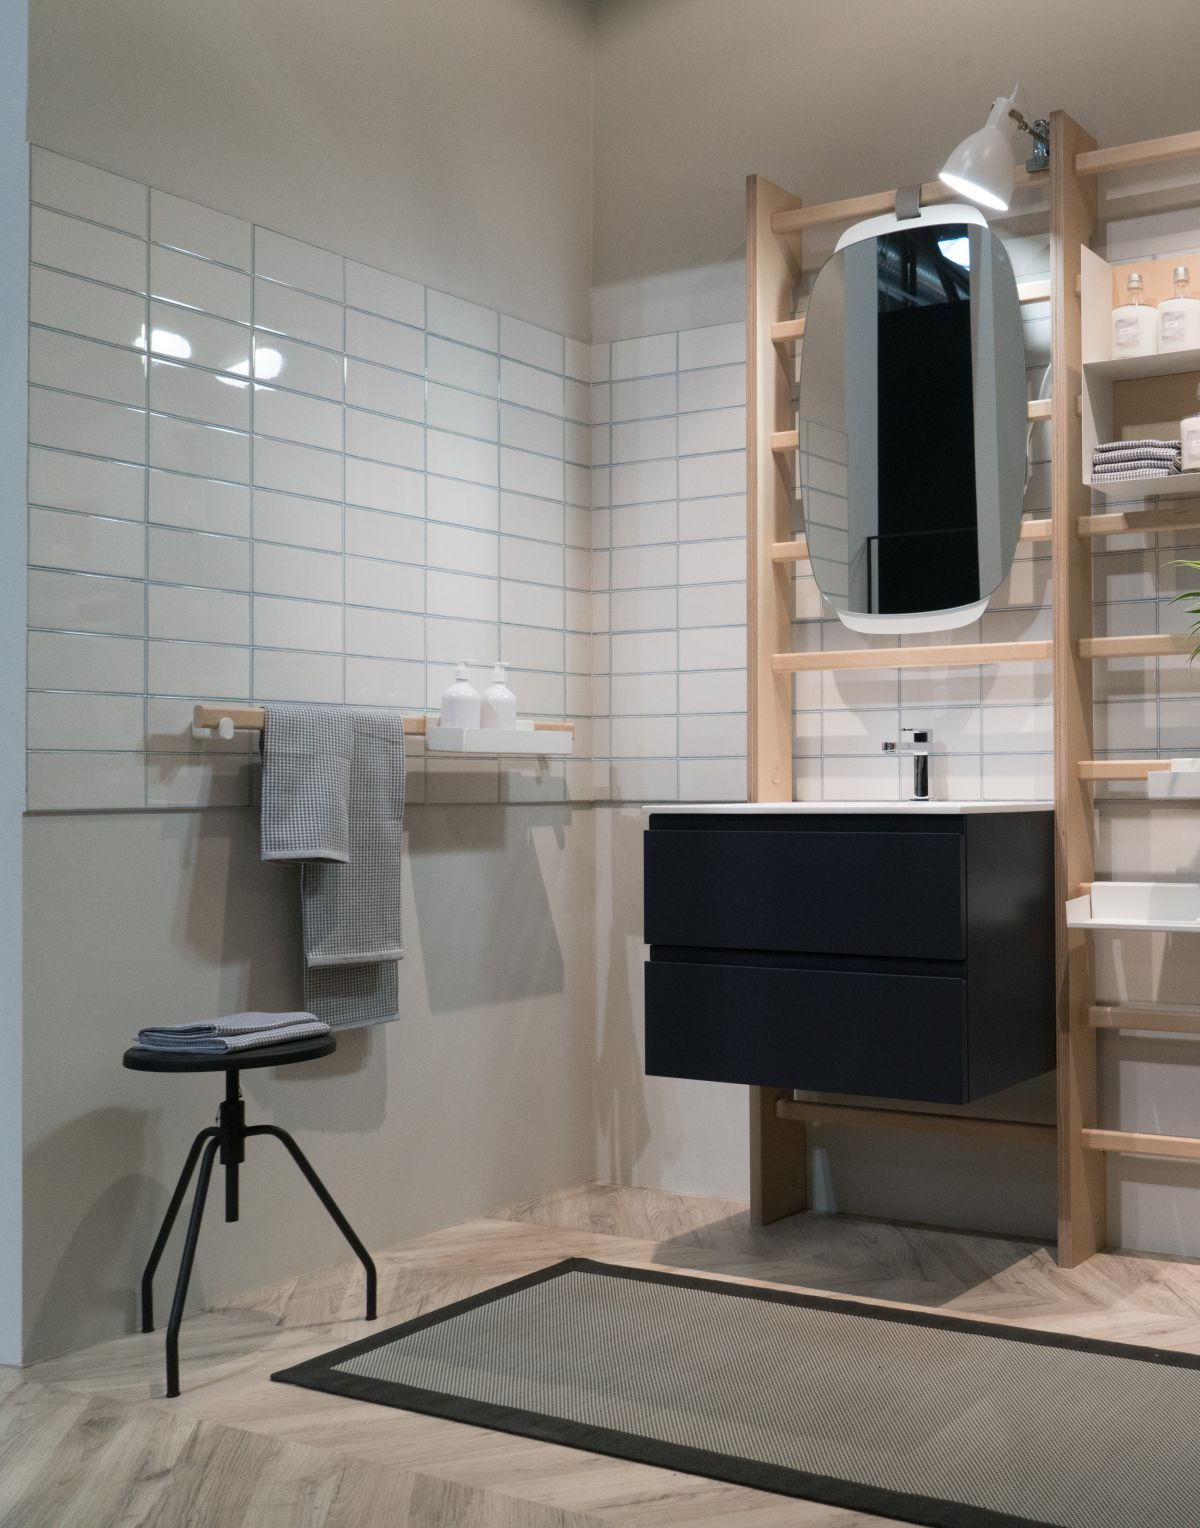 This array of individual and modular accessories makes it possible for each bathroom to be different and special